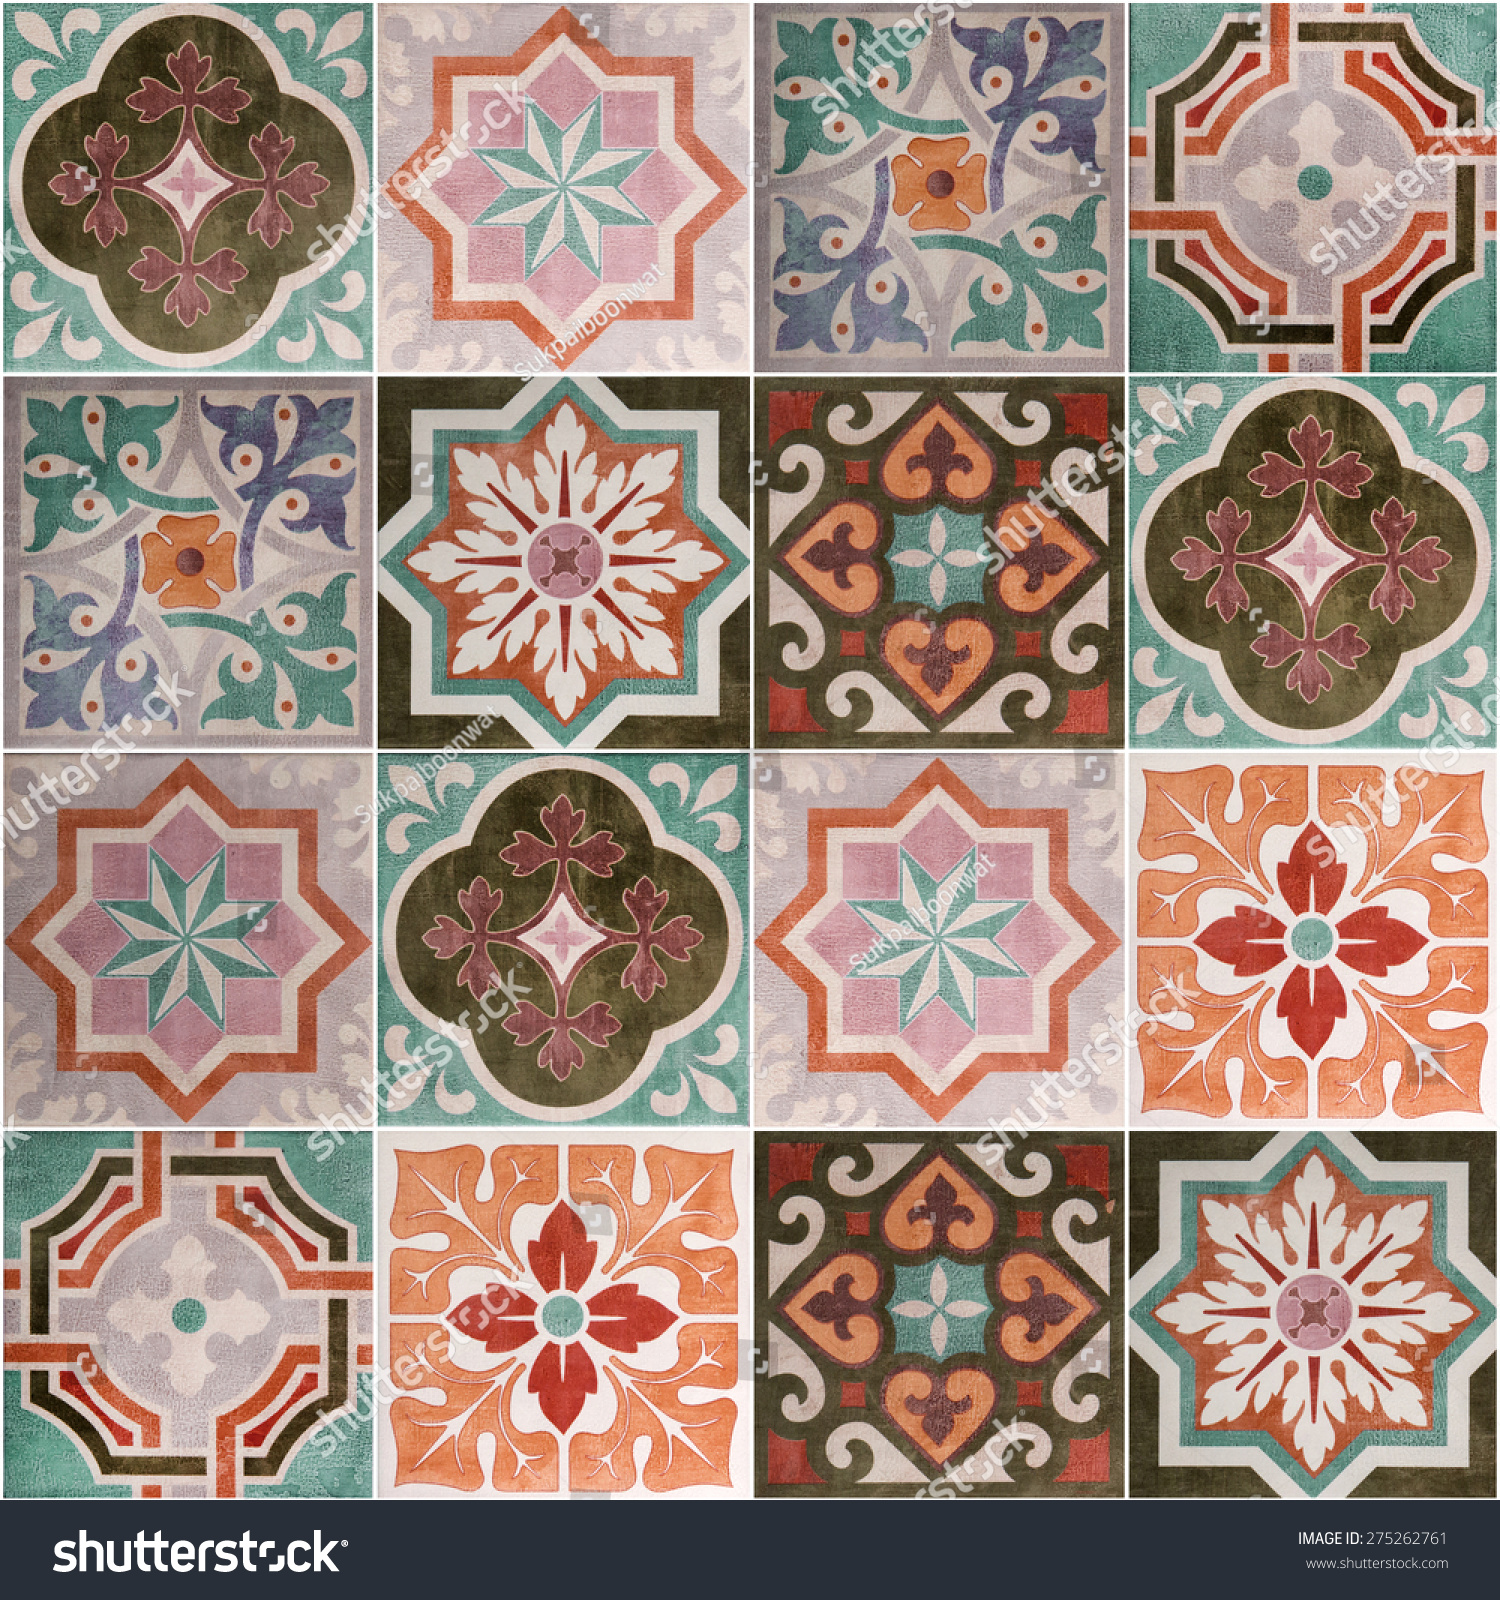 Ceramic Tiles Patterns From Portugal Stock Photo